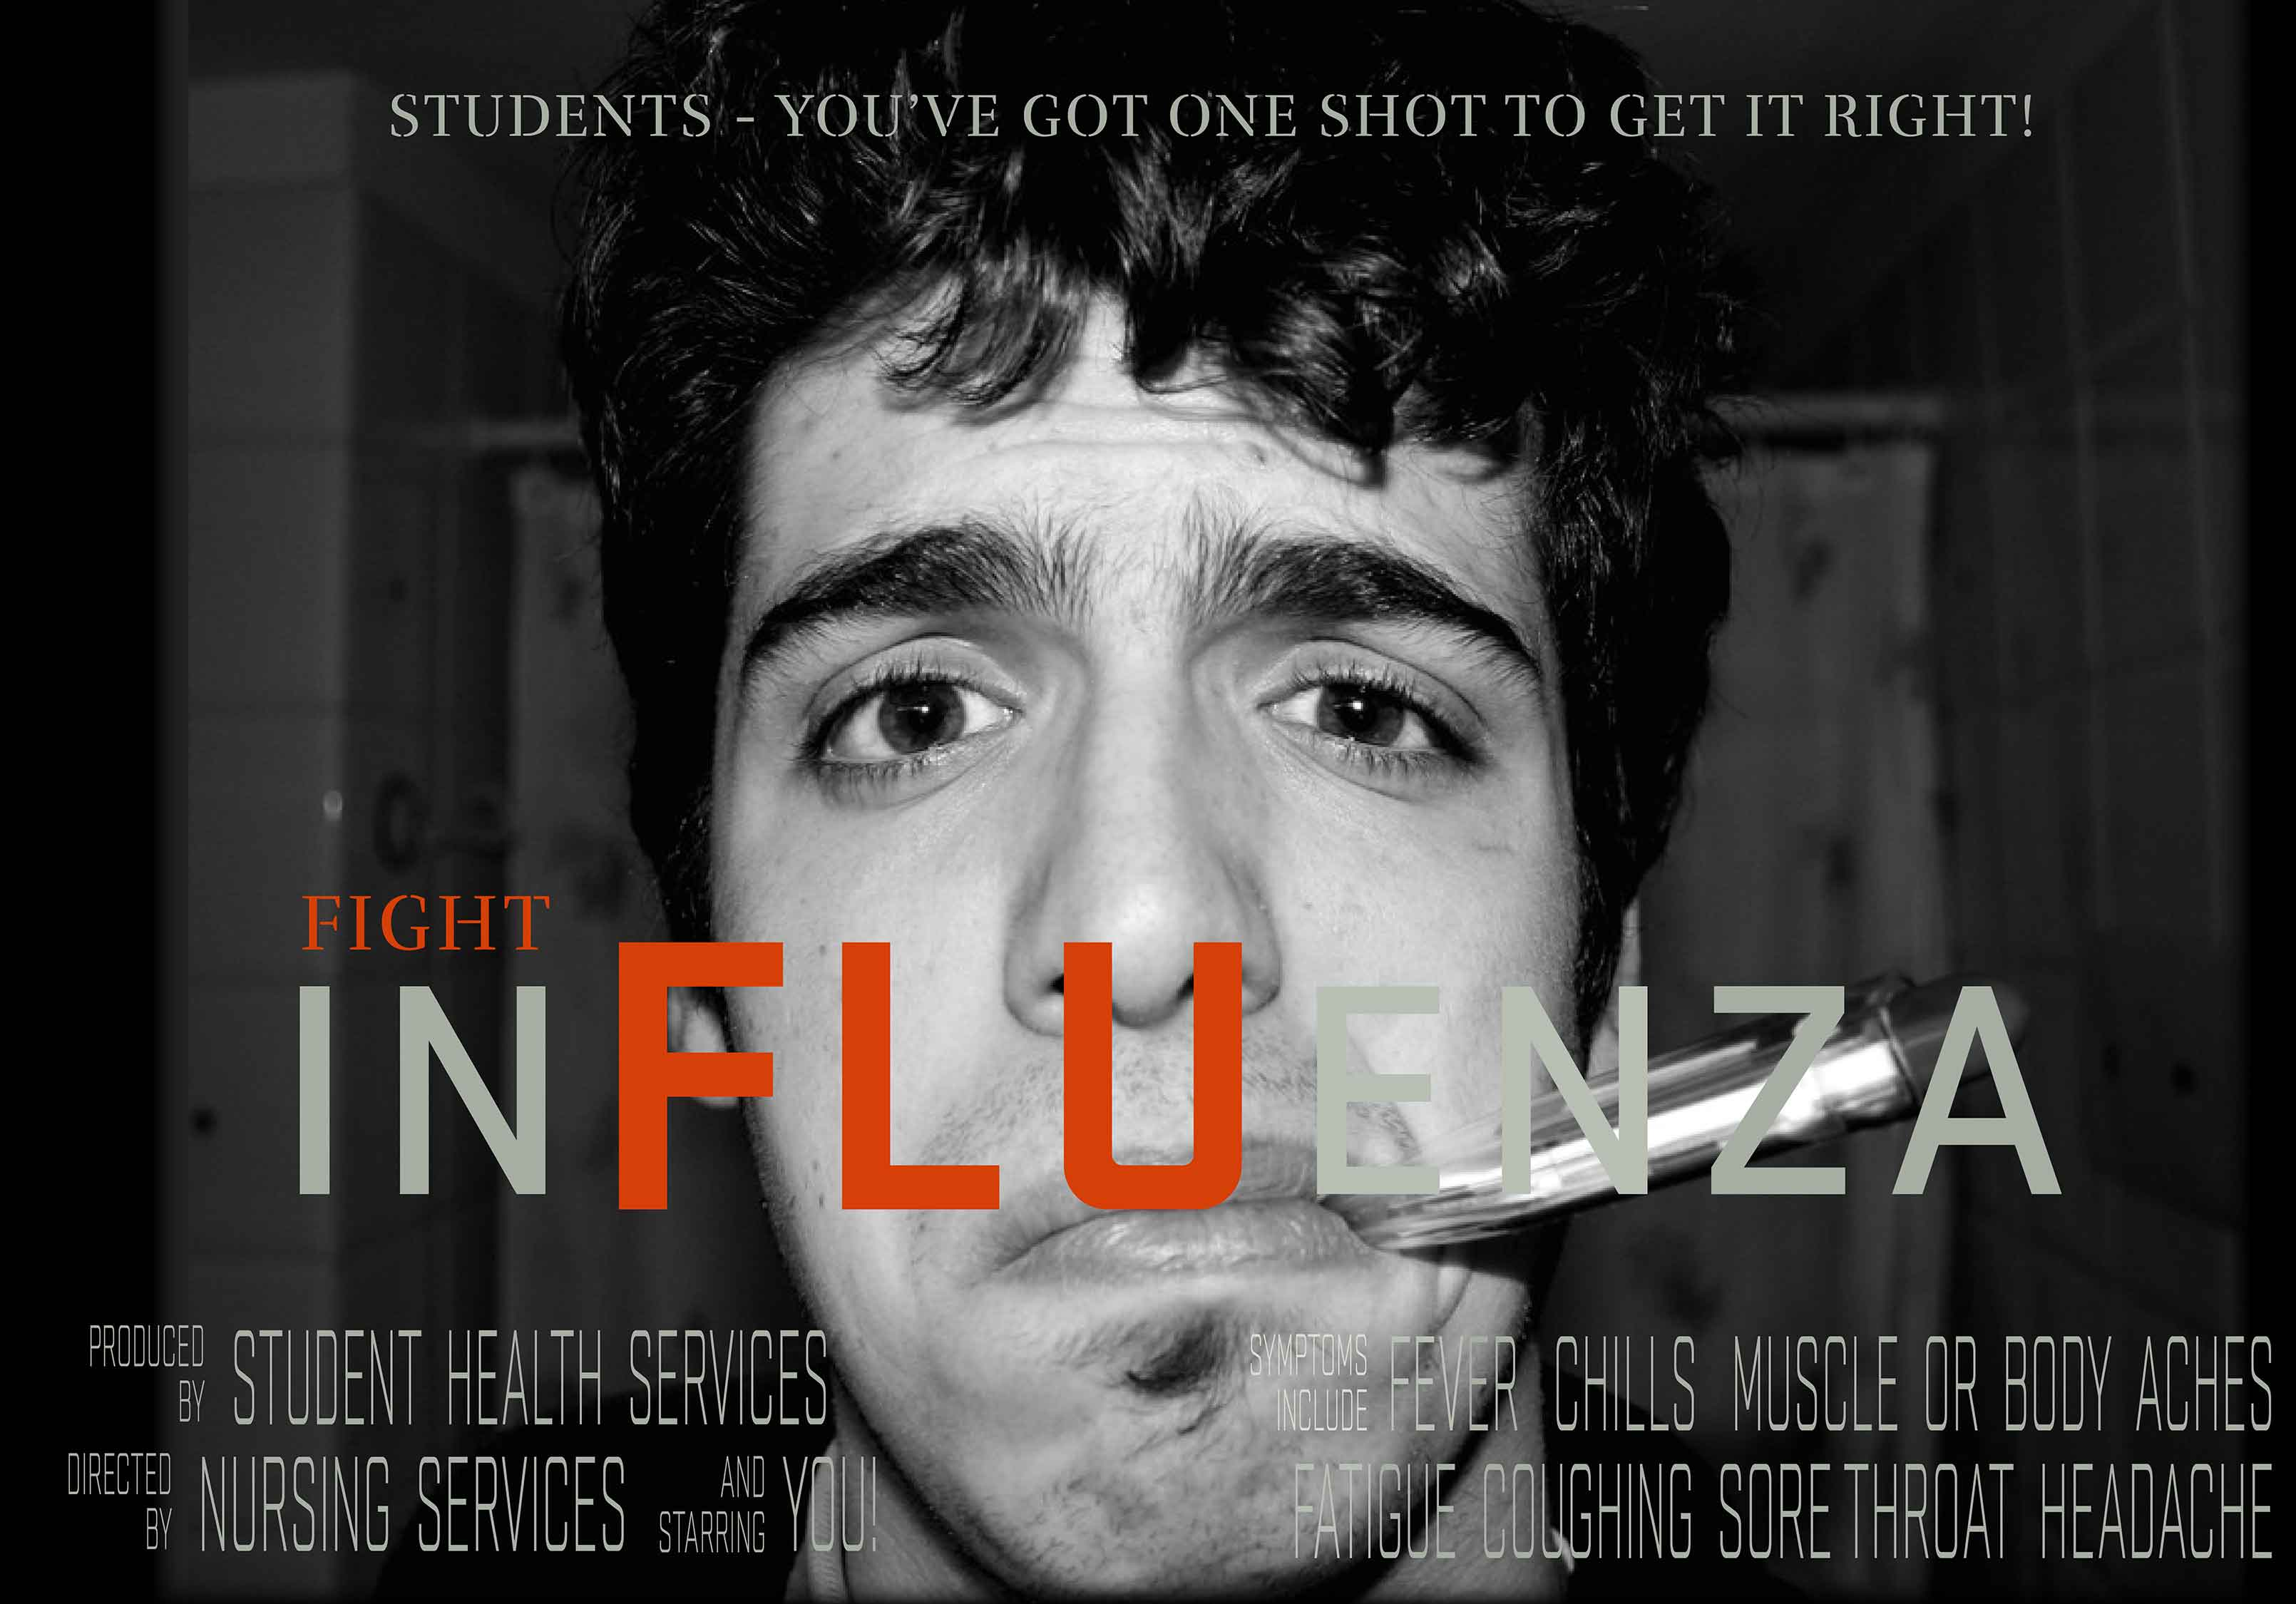 graphic that advertises the flu clinics